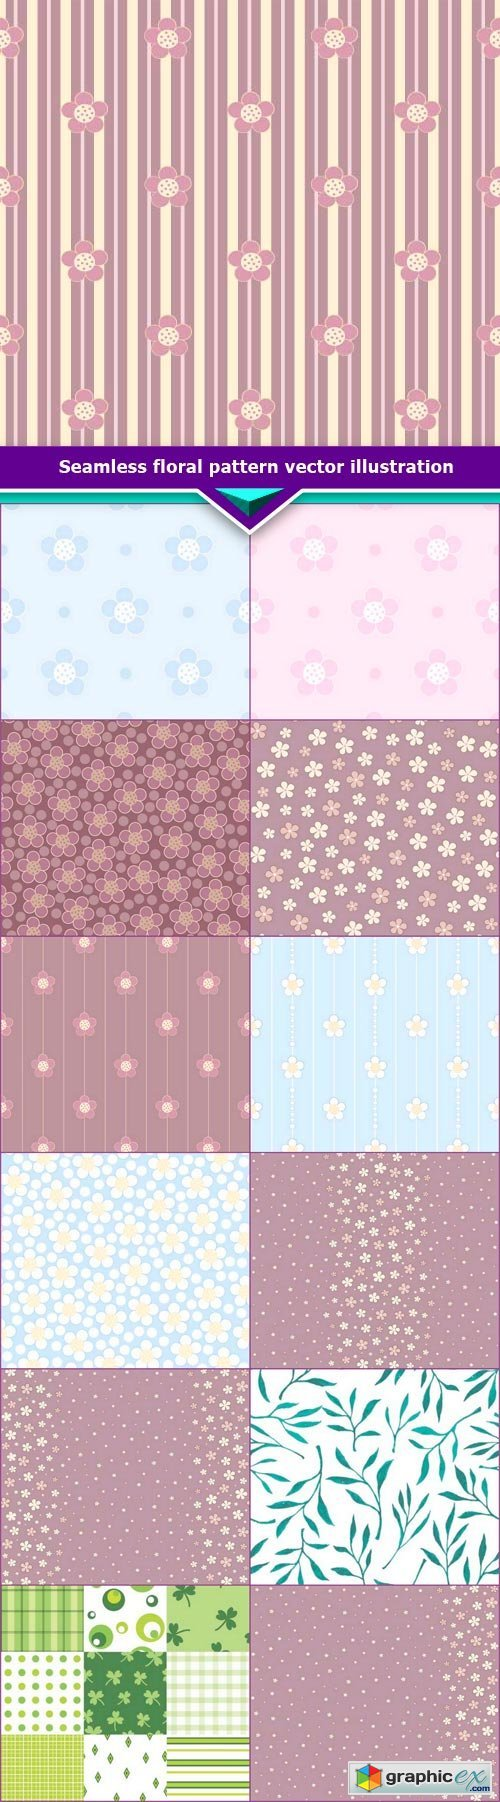 Seamless floral pattern vector illustration 13x EPS